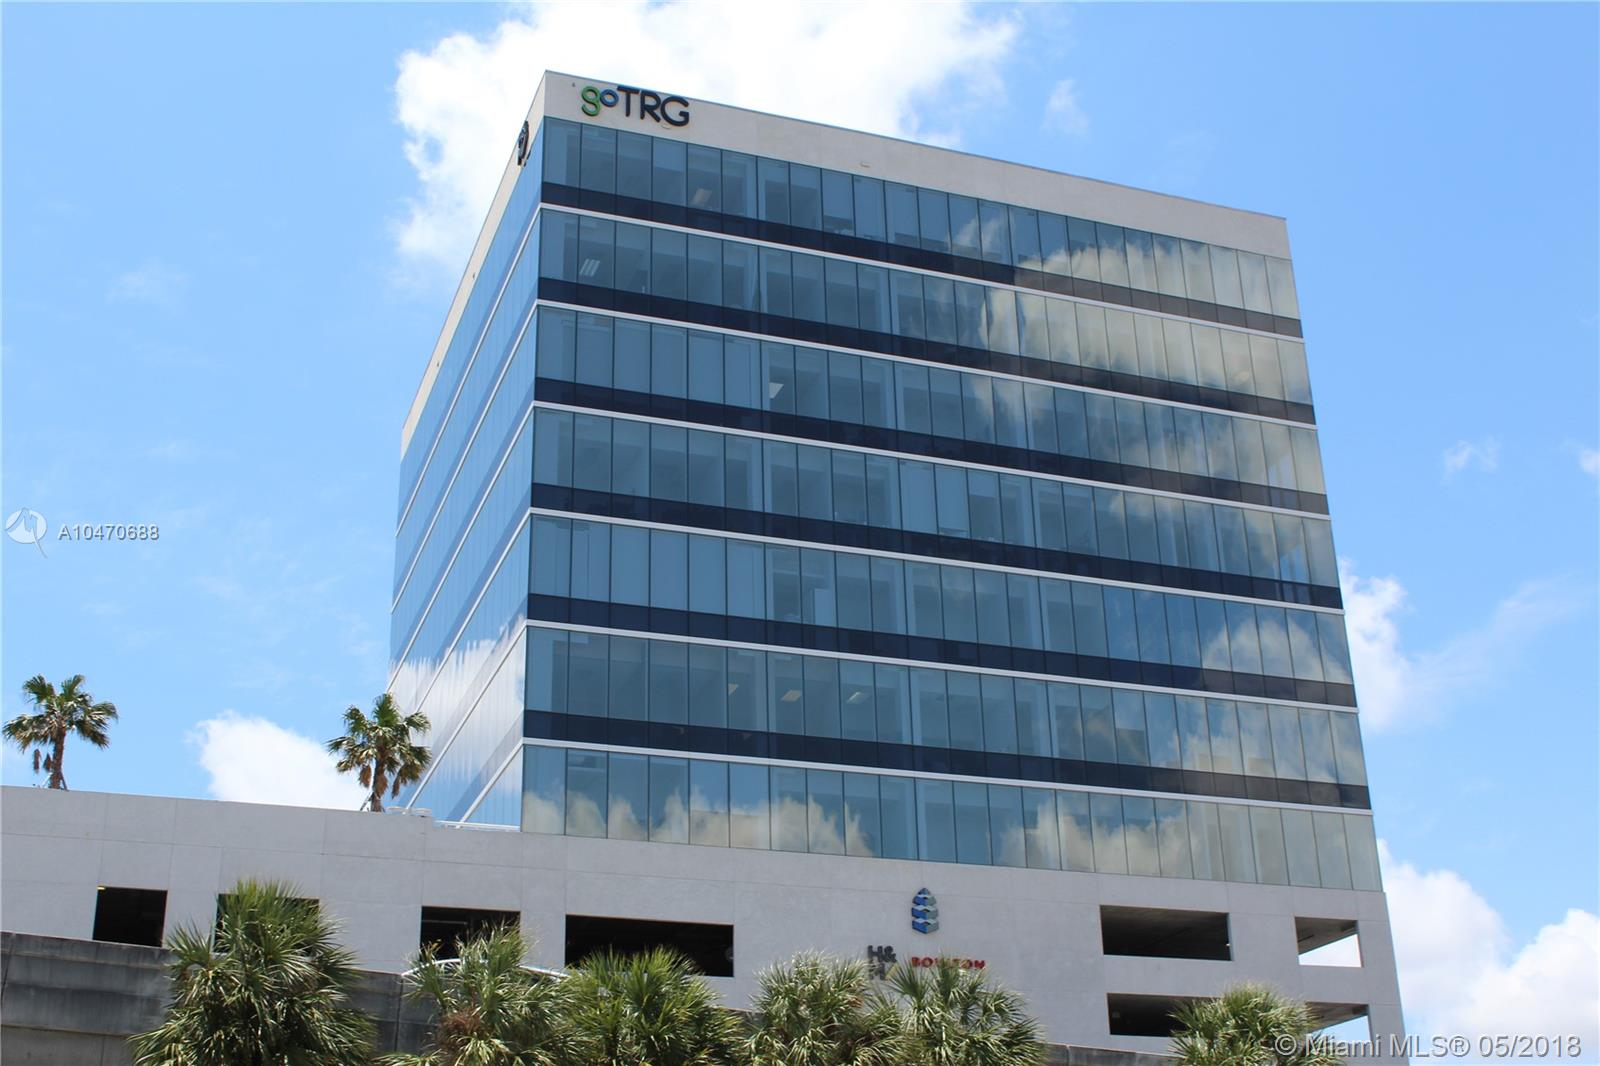 20200 W Dixie Hwy # 1208, Miami, Florida 33180, ,Commercial Sale,For Sale,20200 W Dixie Hwy # 1208,A10470688